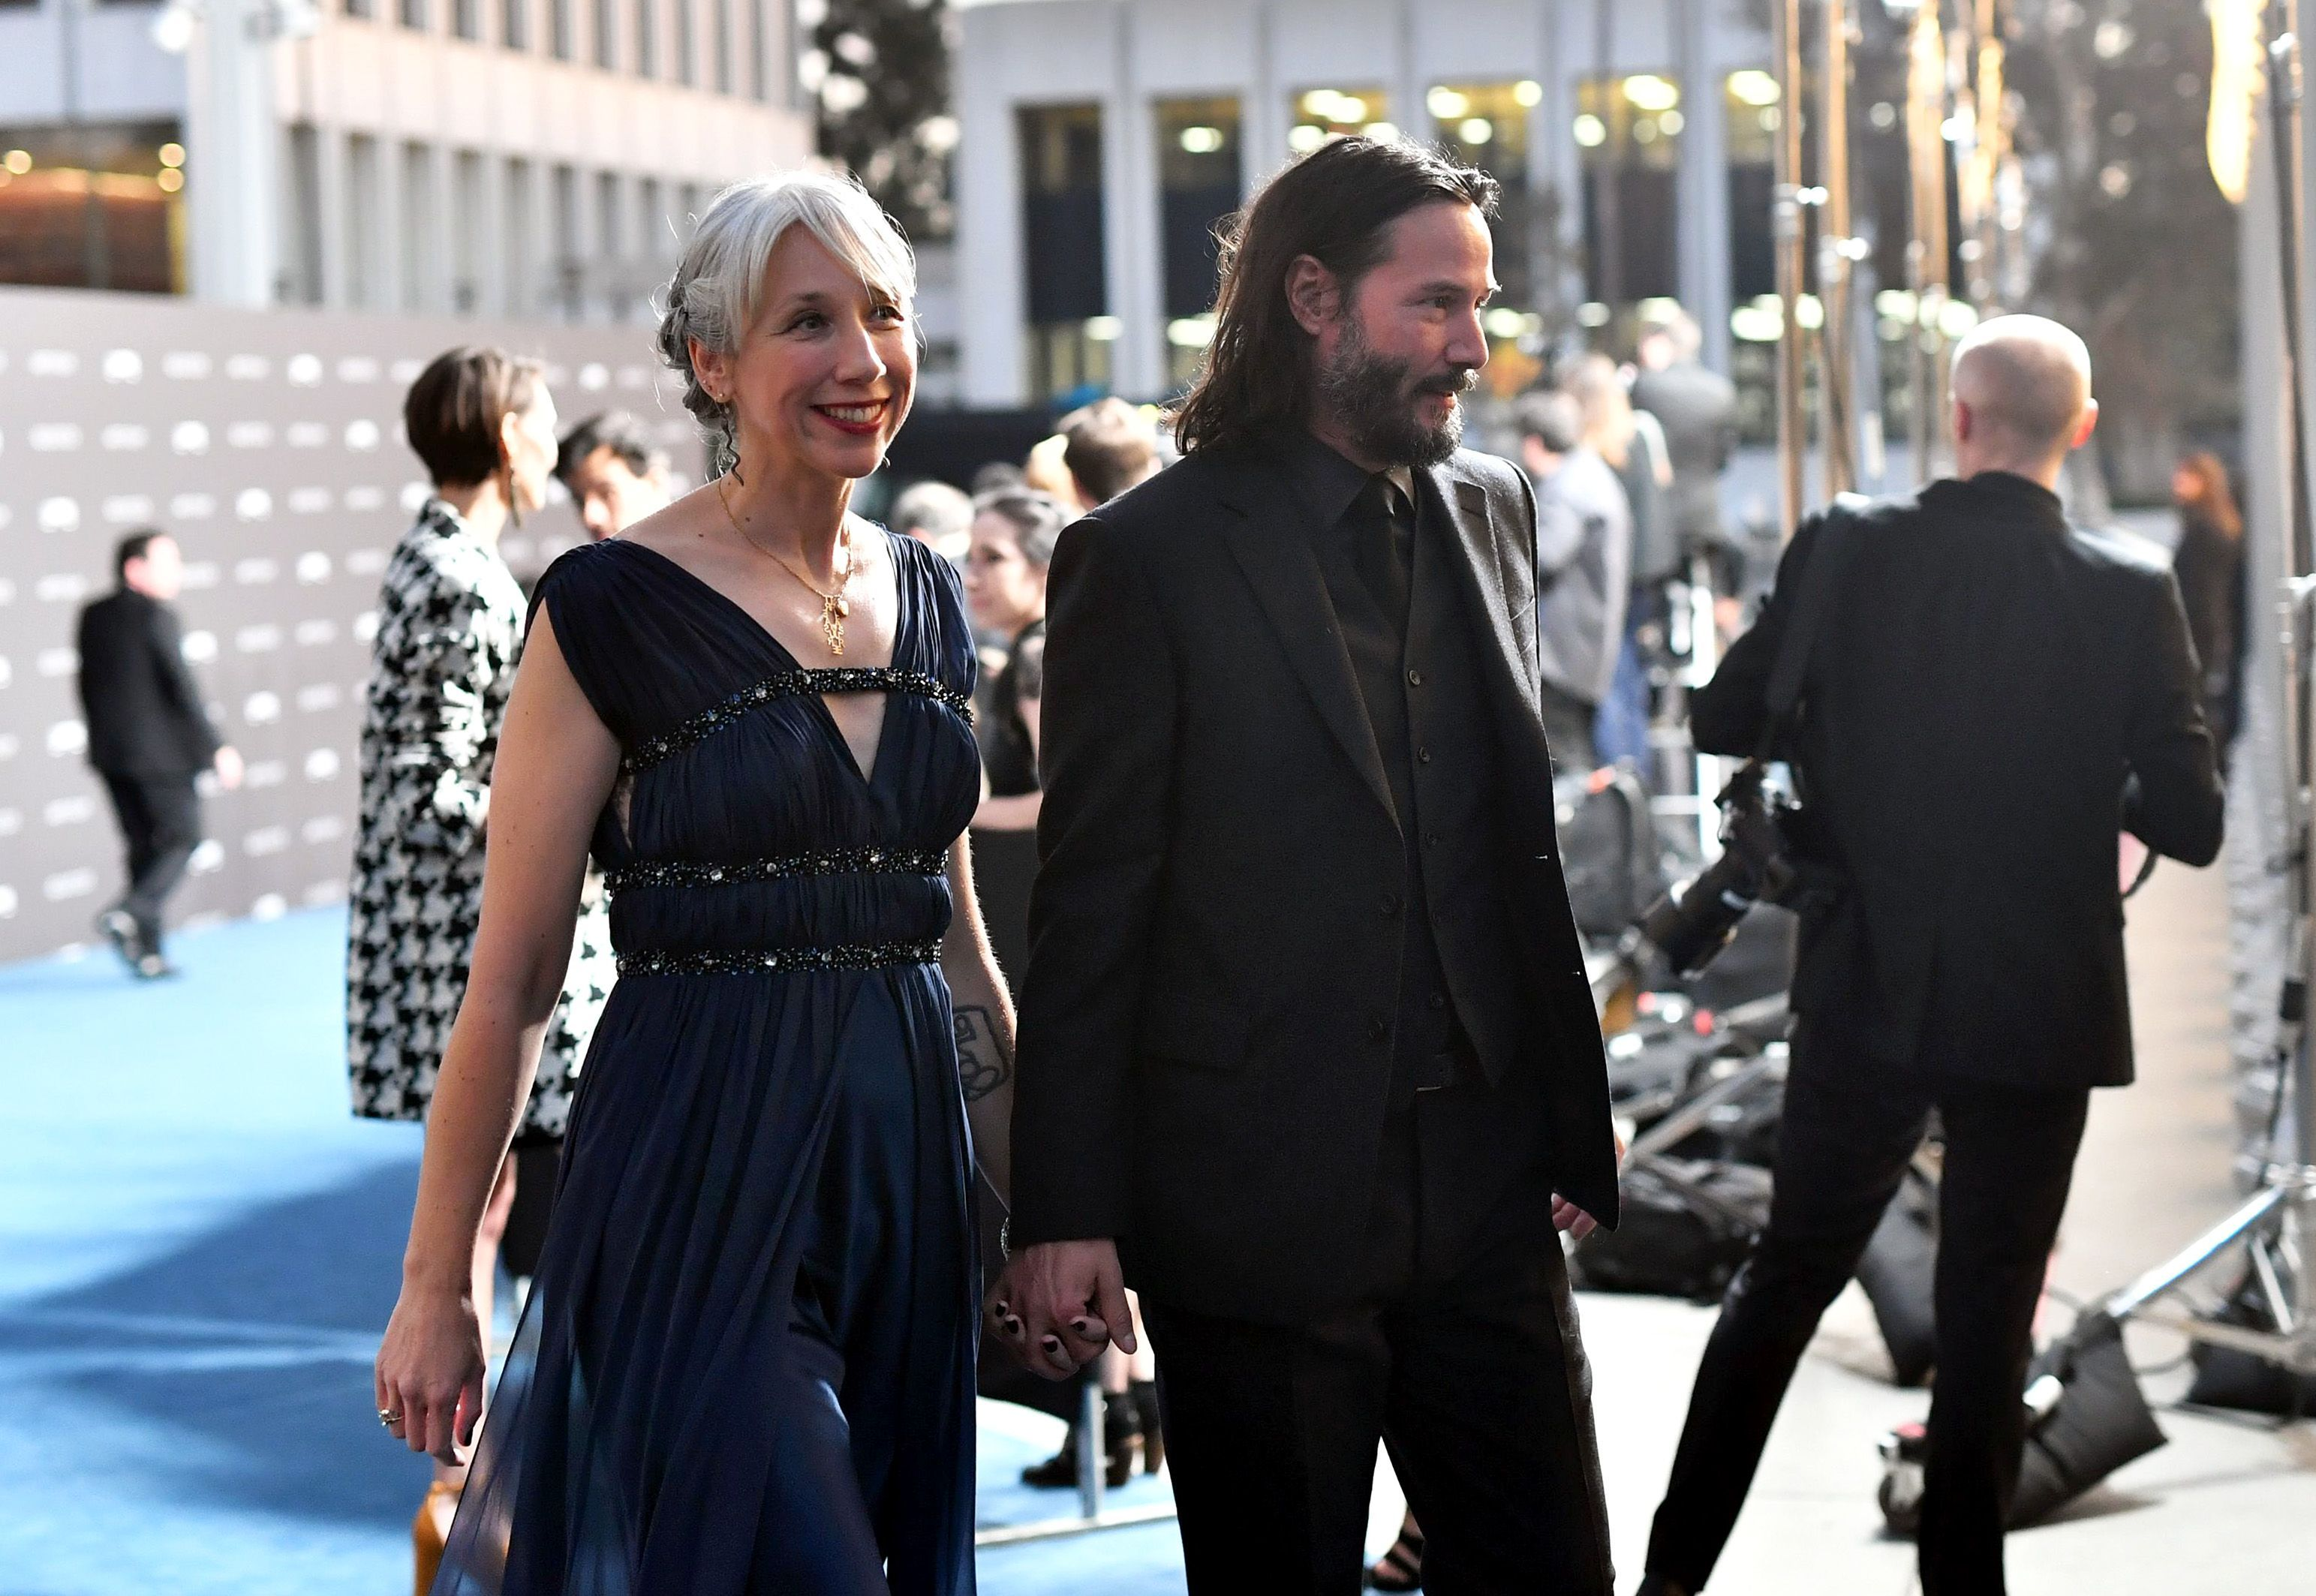 Alexandra Grant and Keanu Reeves attend the LACMA Art + Film Gala in Los Angeles, California on November 2, 2019 | Photo: Getty Images